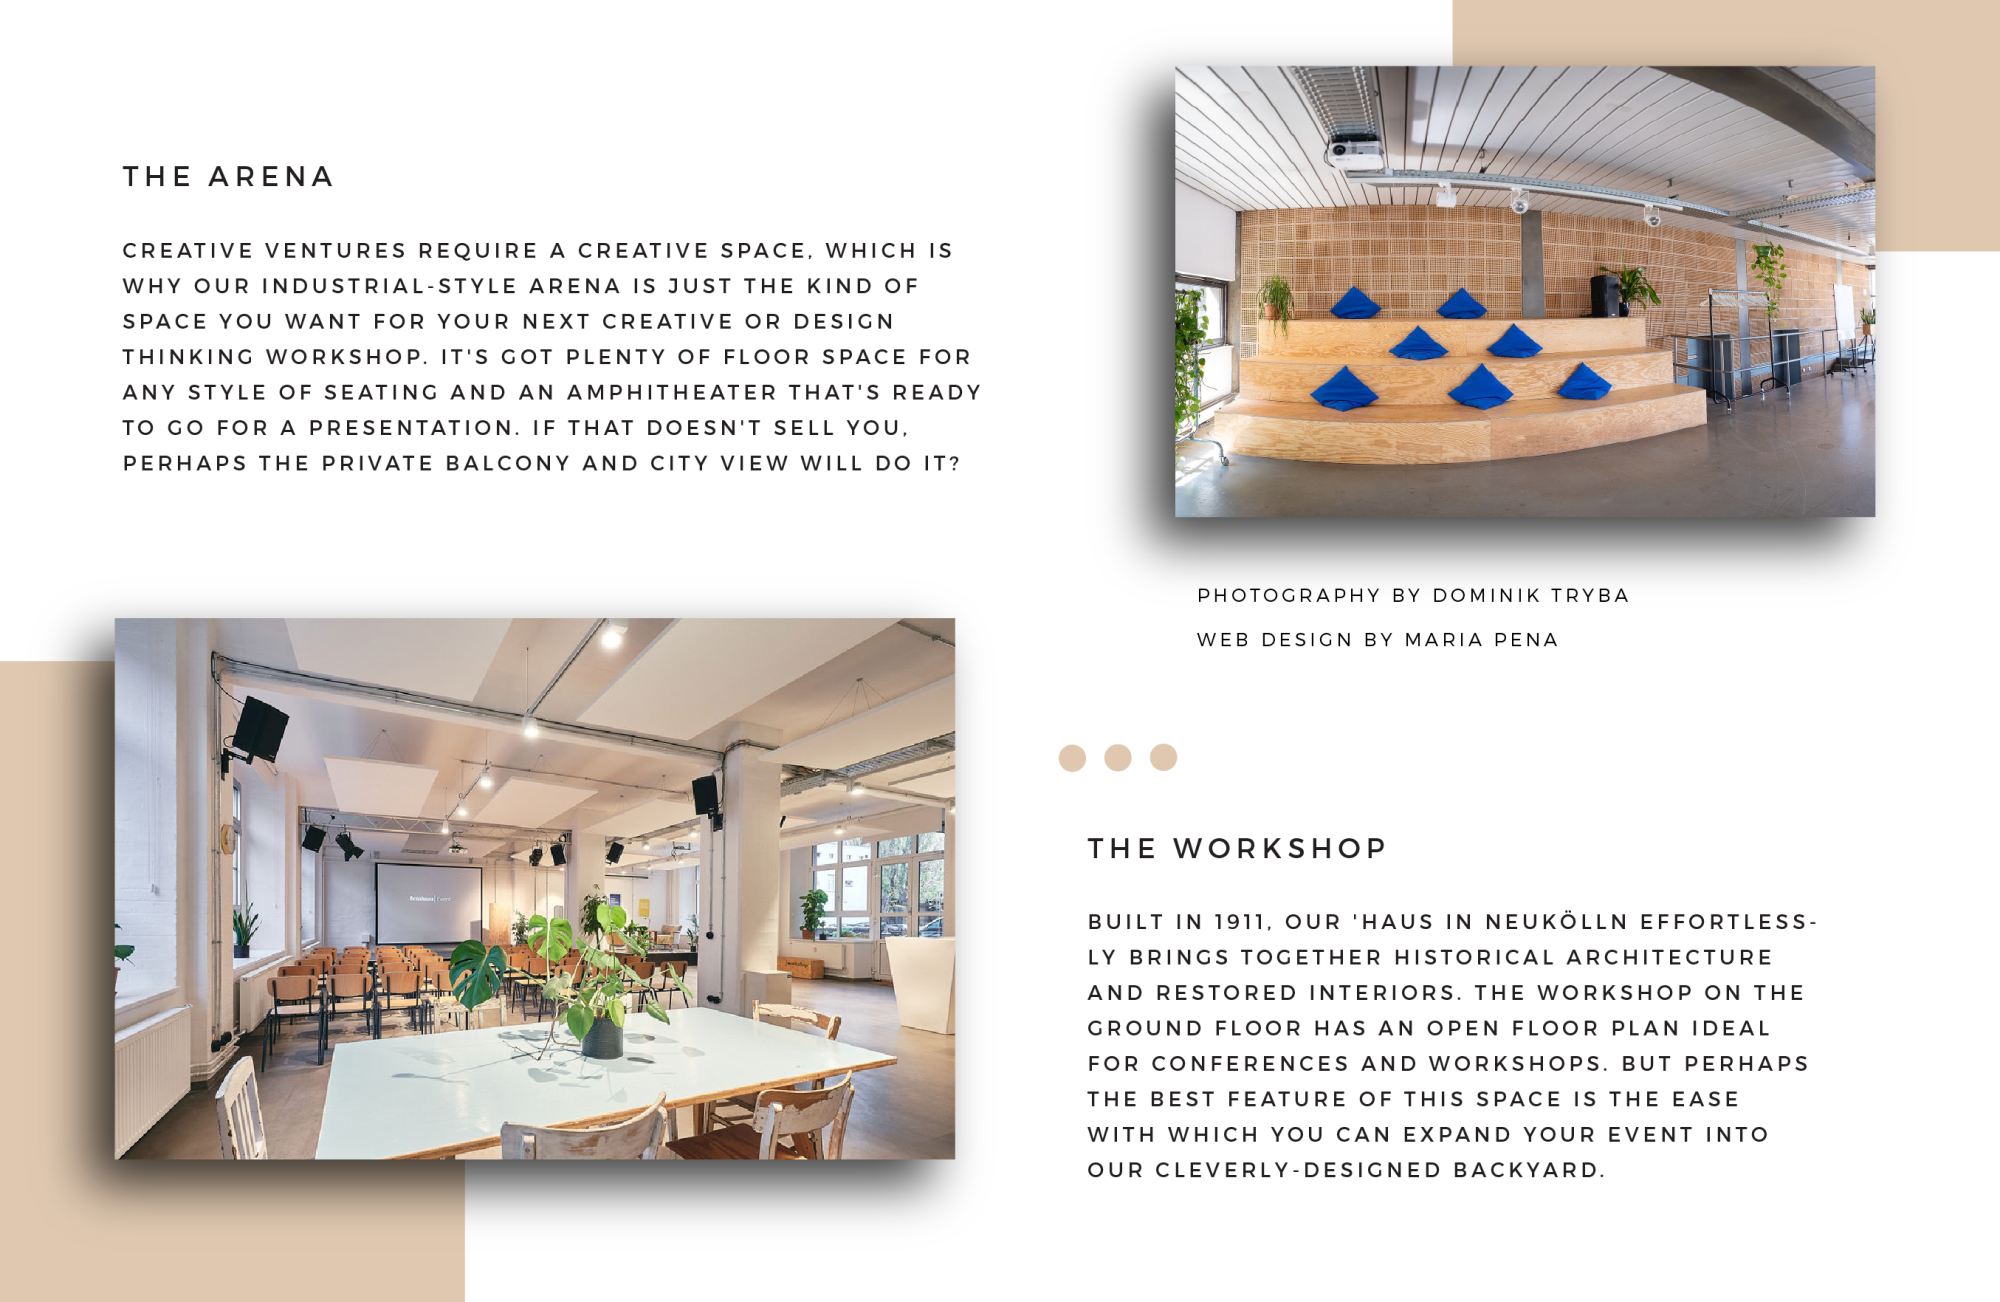 betahaus Events - Featured Text from Arena and Workshop